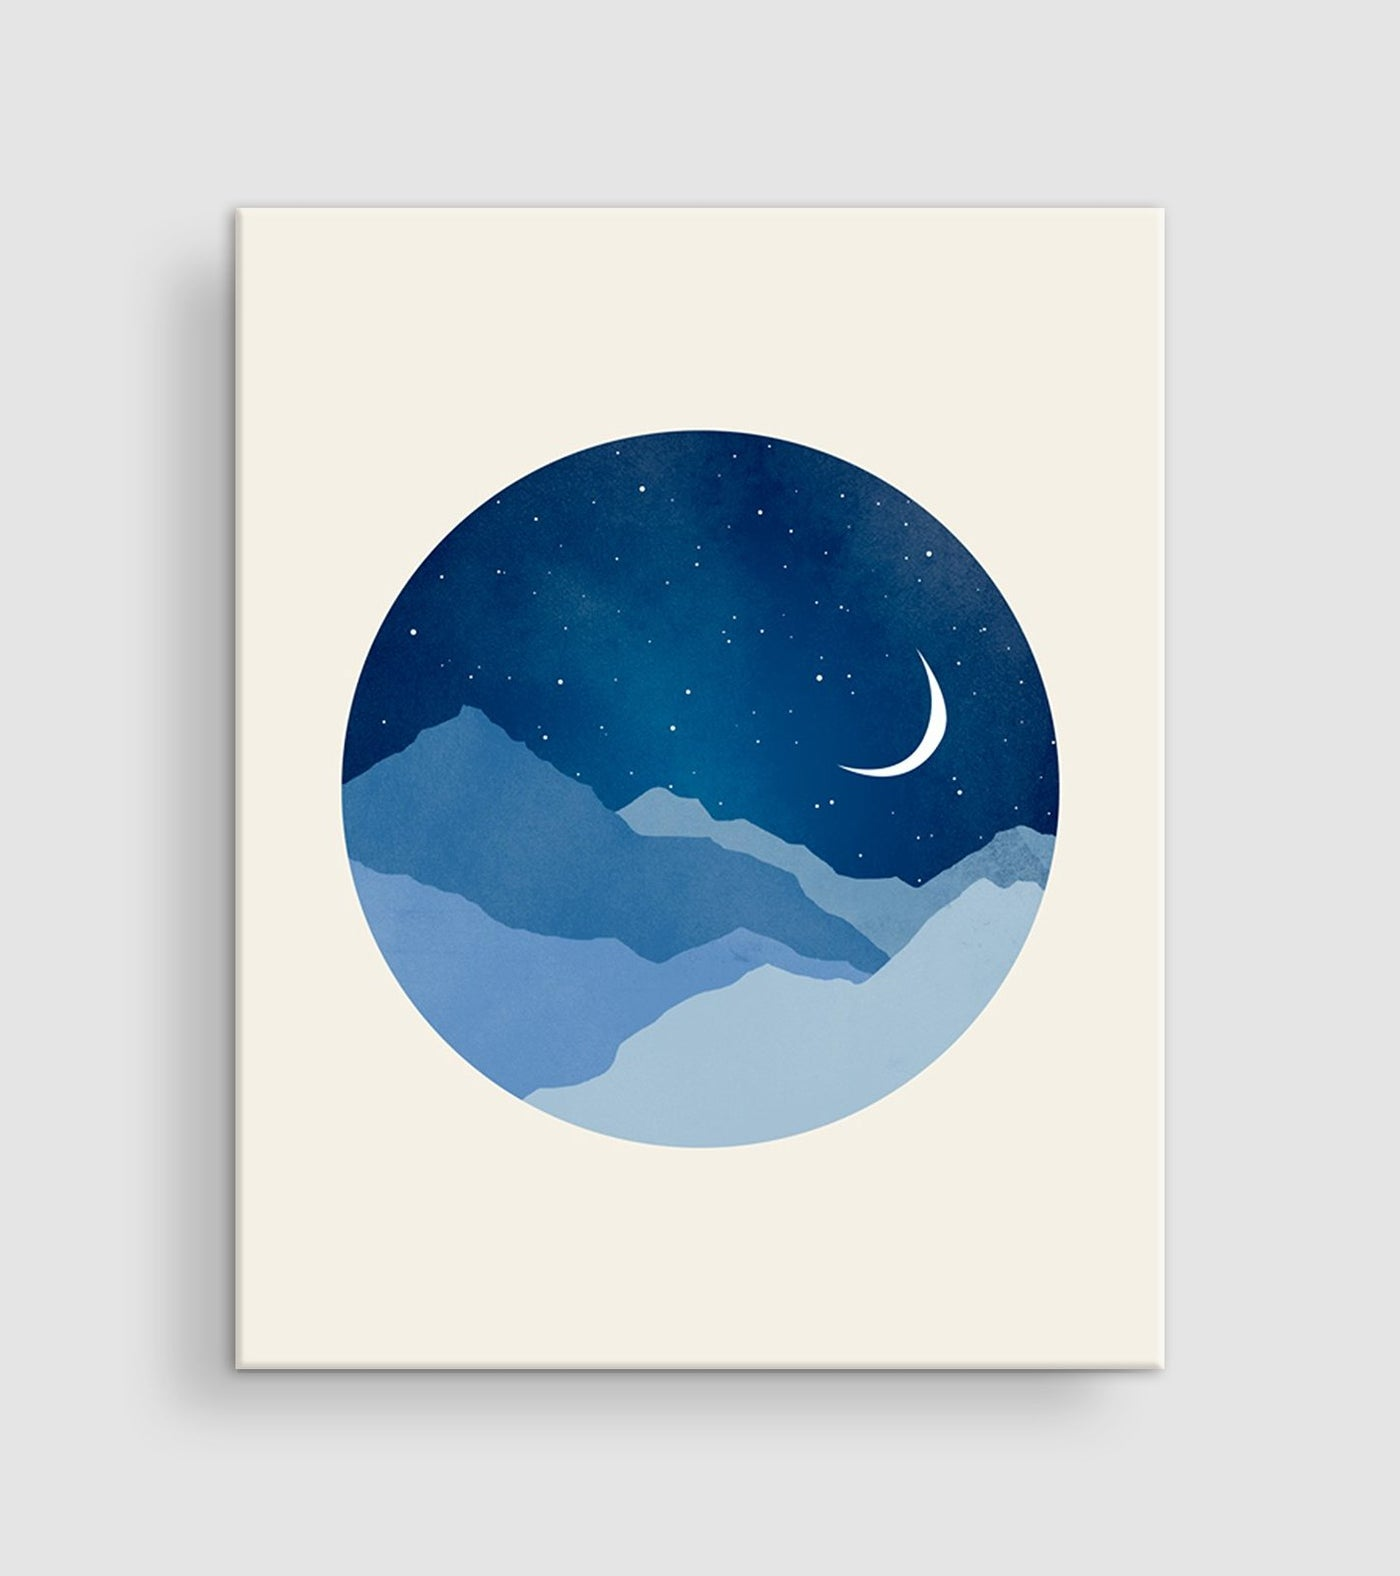 moon and stars nursery decor canvas wall art